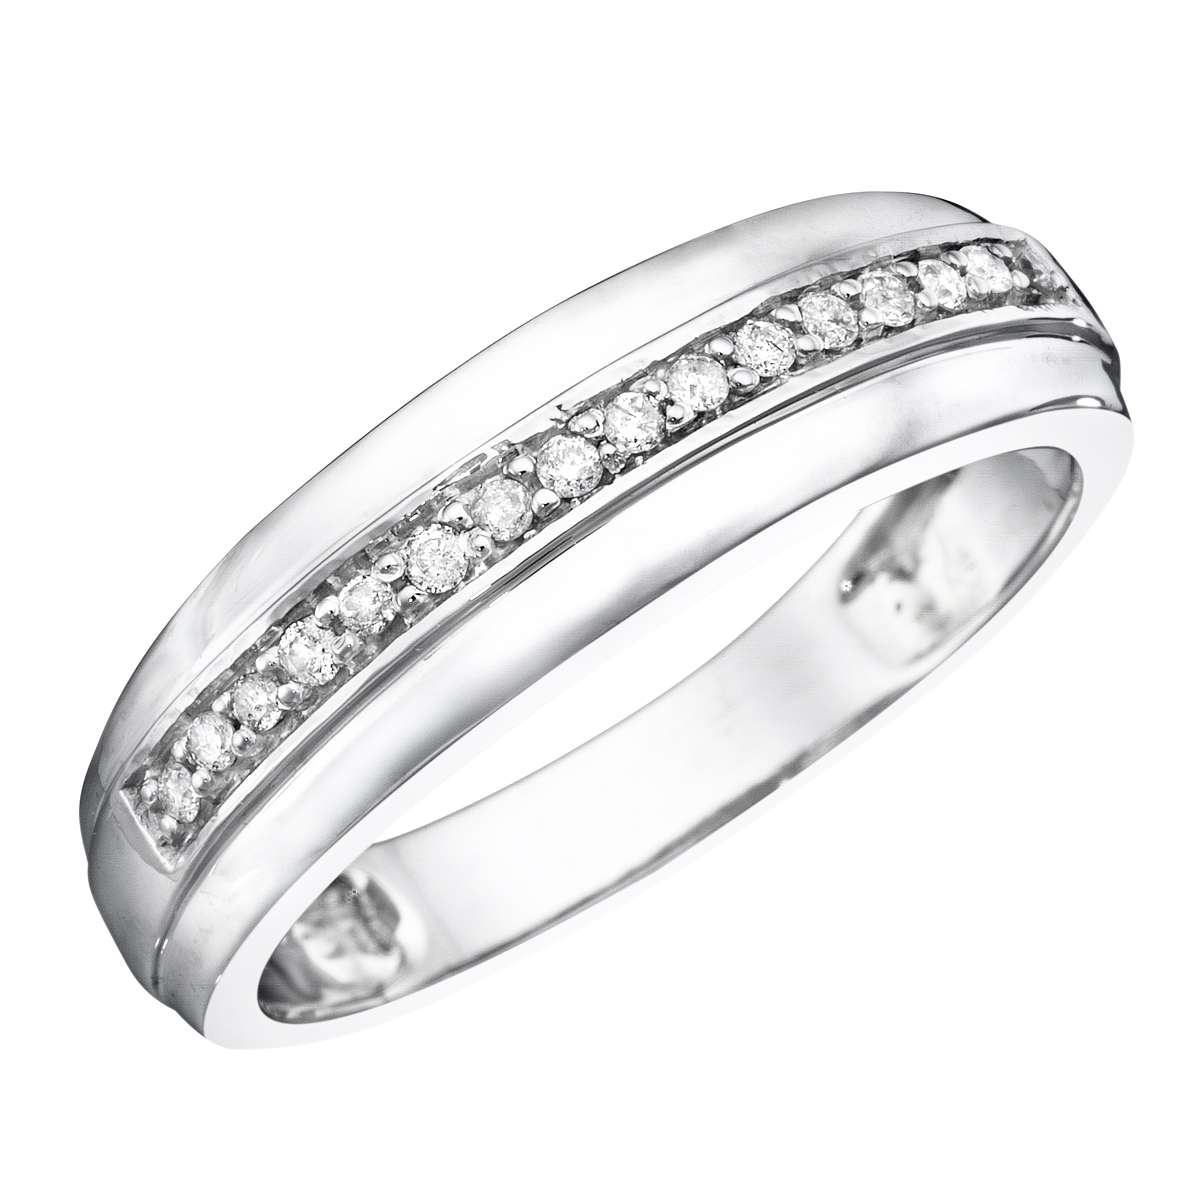 1 5 CT TW Diamond Mens Wedding Band 14K White Gold